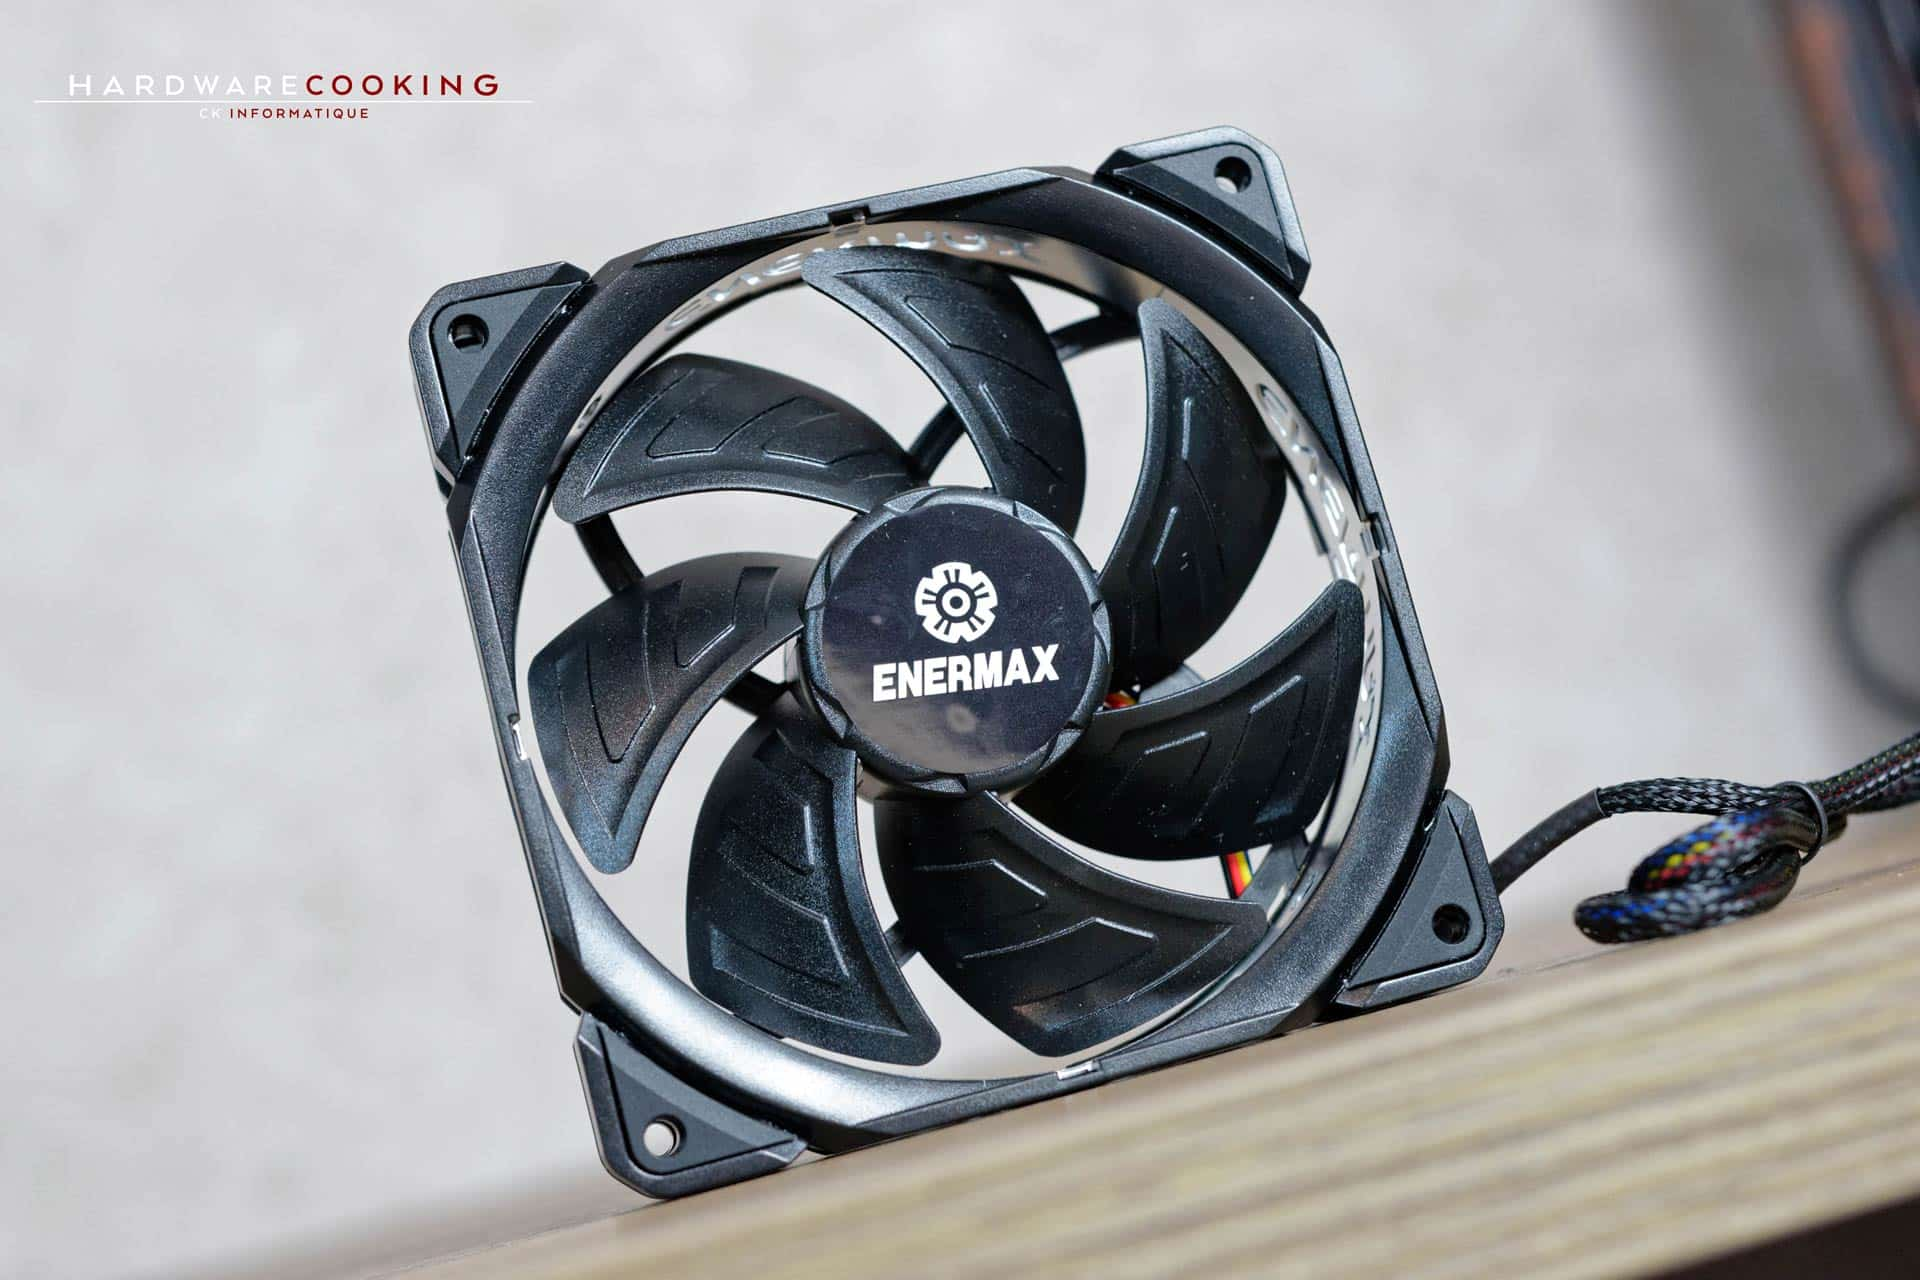 Test ventilateur Enermax T.B.Silence ADV 120mm